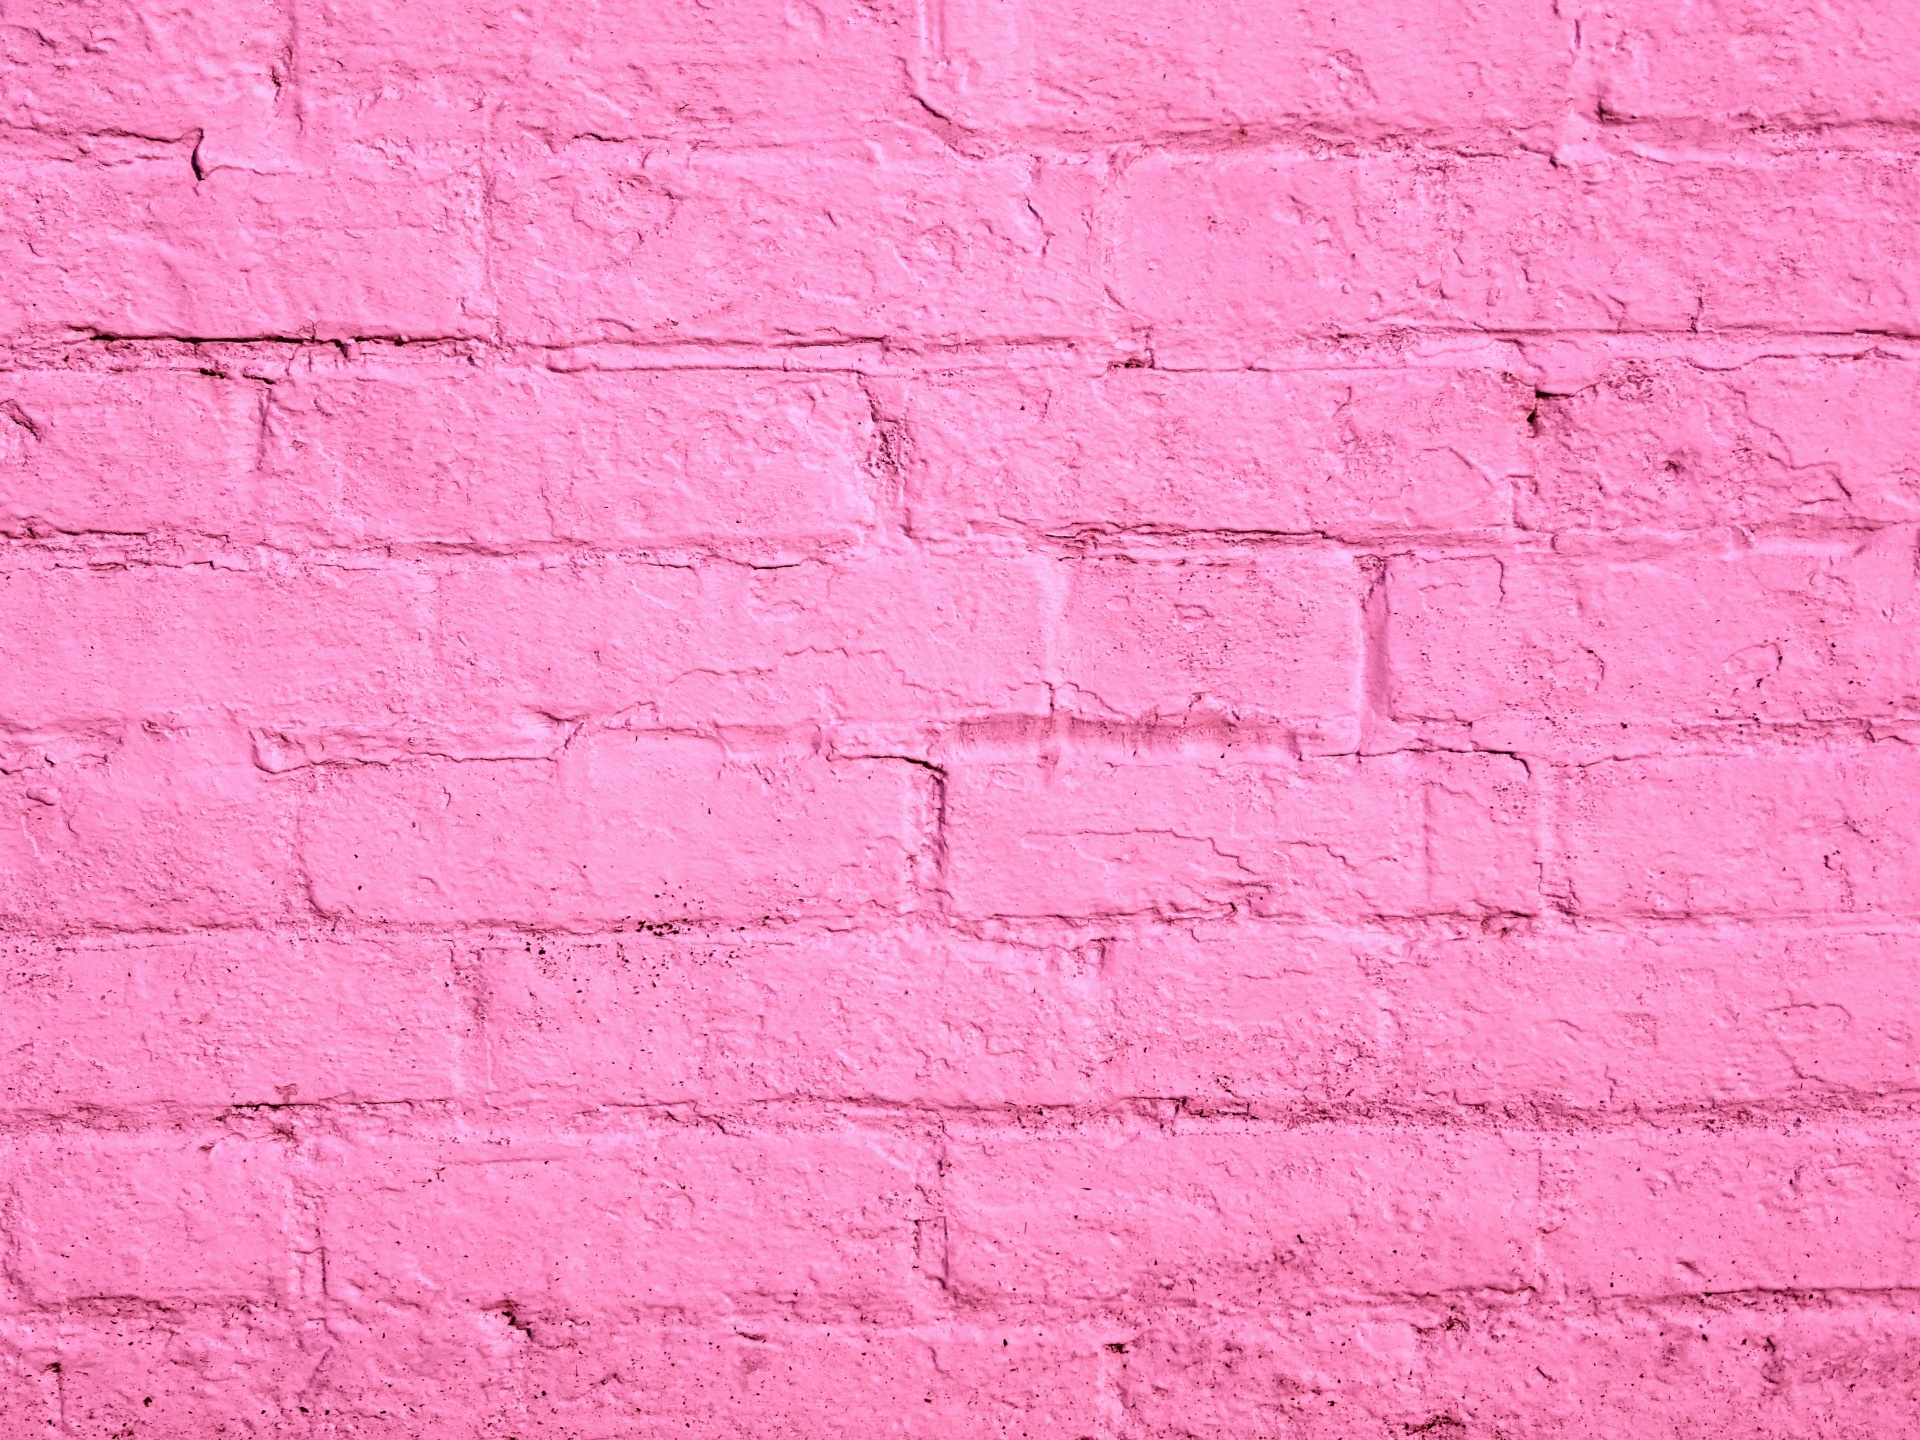 Pink Painted Brick Wall Free Stock Photo - Public Domain Pictures